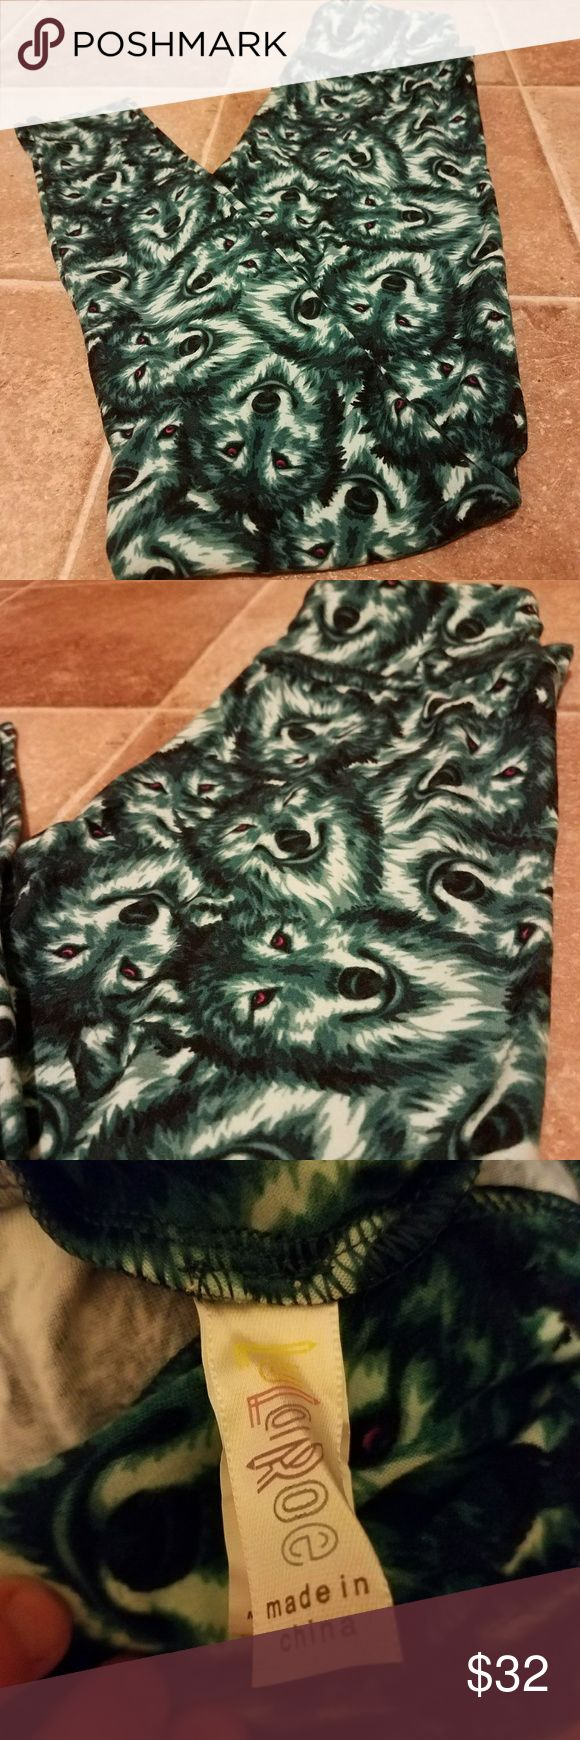 EUC Lularoe Wolf Leggings OS Leggings EUC Lularoe Wolf Leggings  Size: OS (fits sizes 0-10) Material: Polyester and Spandex  These have been worn once to try on!  You will fall in love with these buttery soft leggings! 😍🦄    Please ask any and all questions before purchasing!    Happy Shopping!! 😁 LuLaRoe Pants Leggings